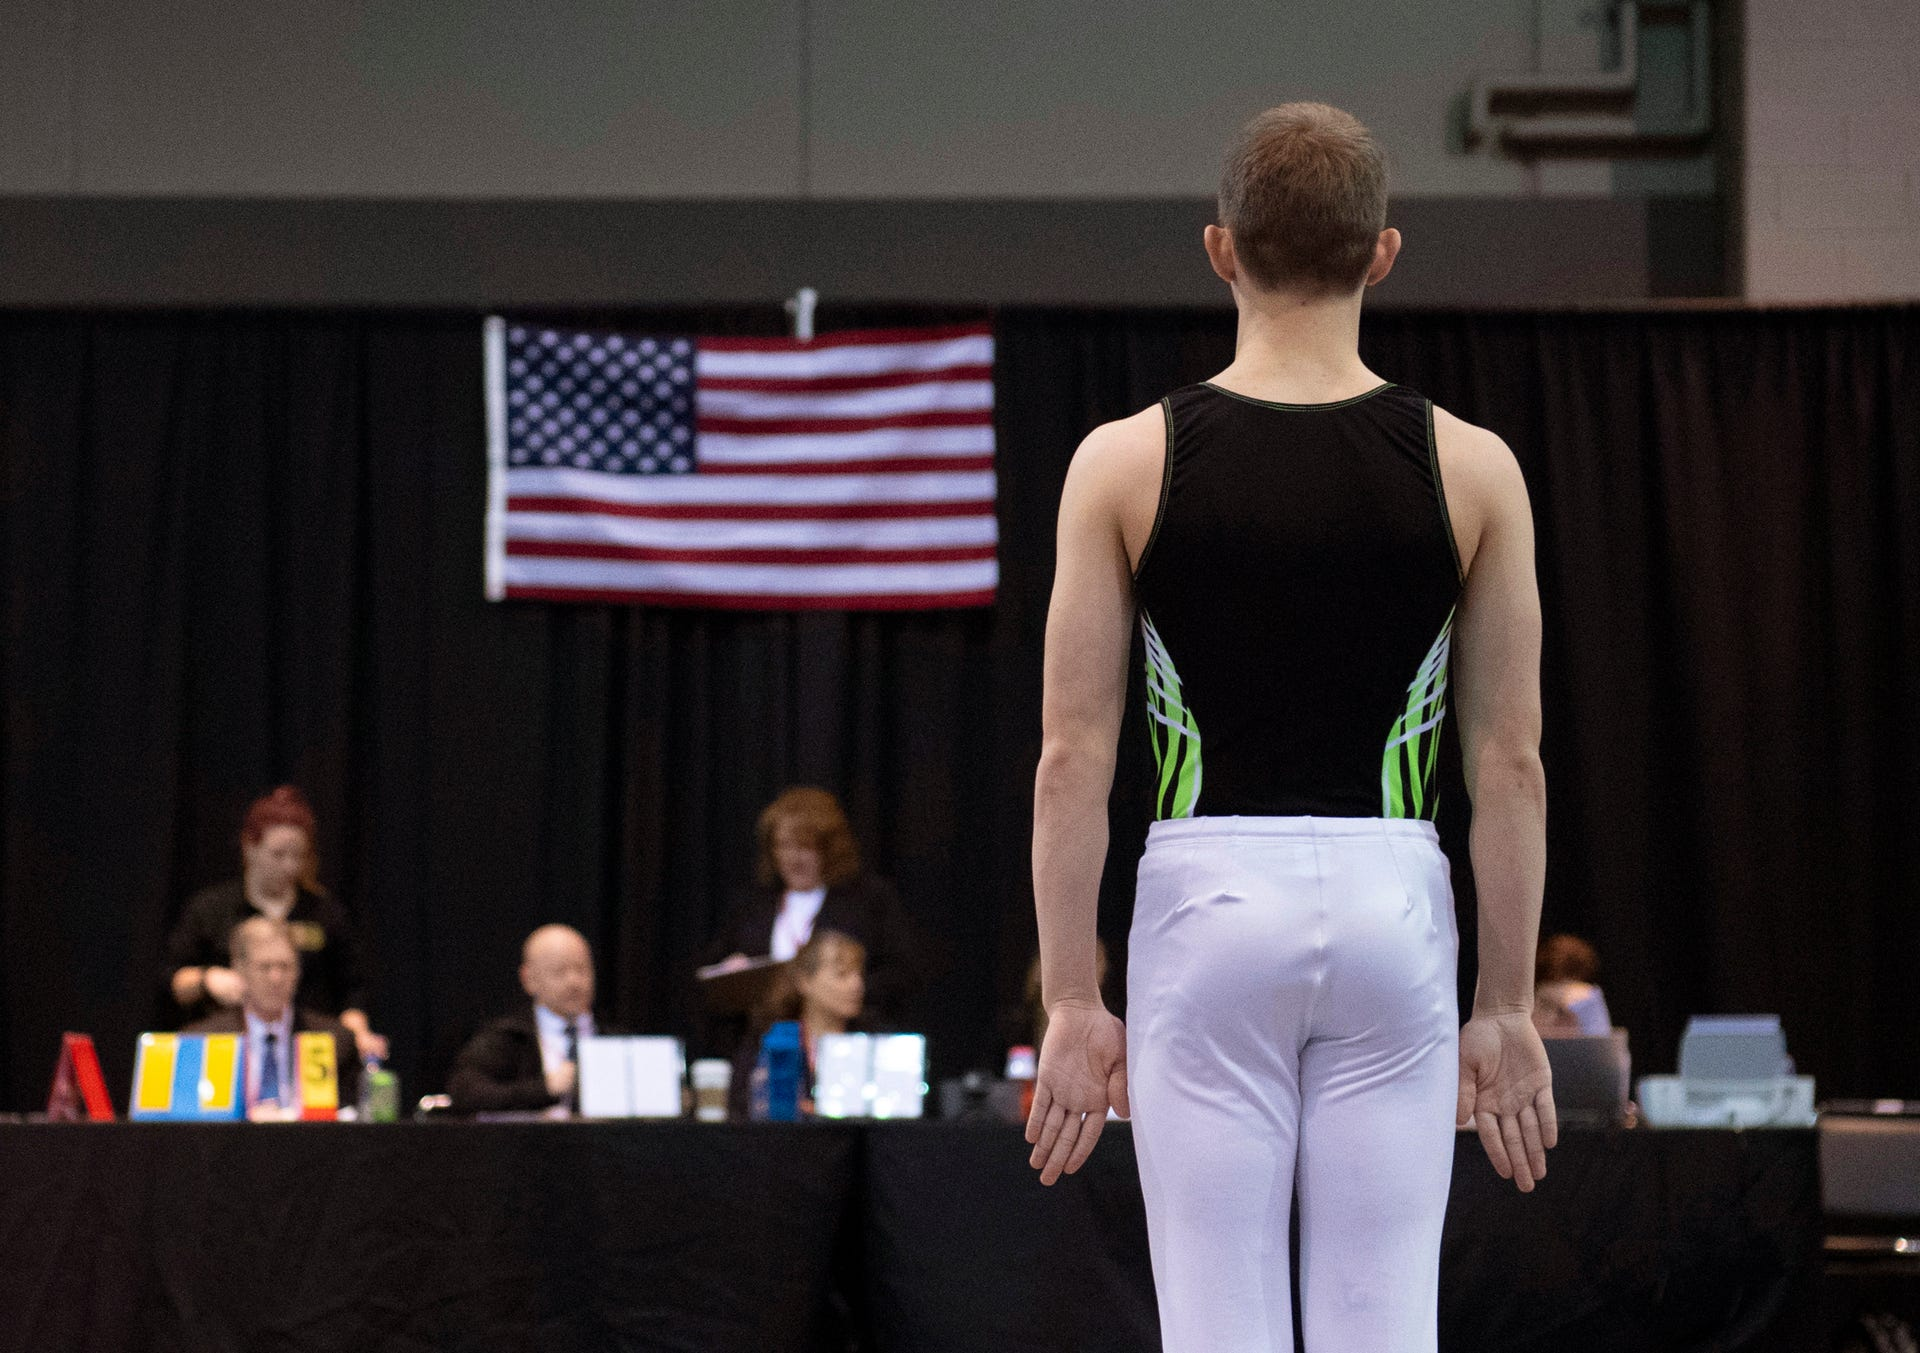 Gallery: VIP Classic gymnasts tumble into town